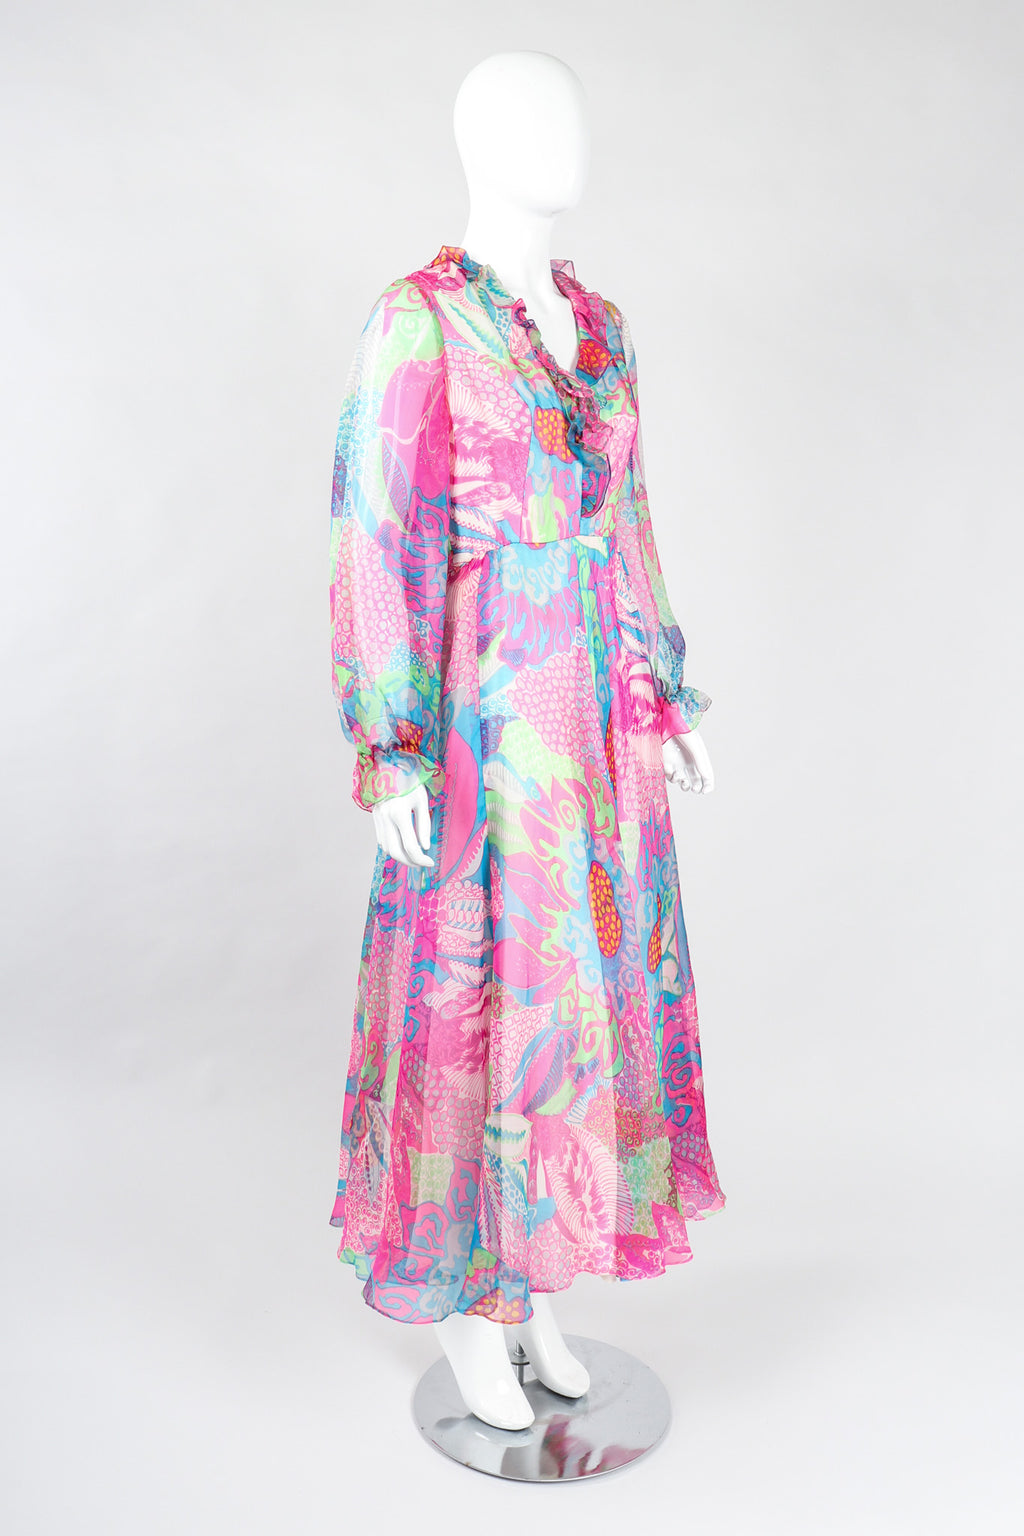 Recess Los Angeles Vintage Nat Kaplan I.Magnin Sheer Psychedelic Neon Mod Floral Dress